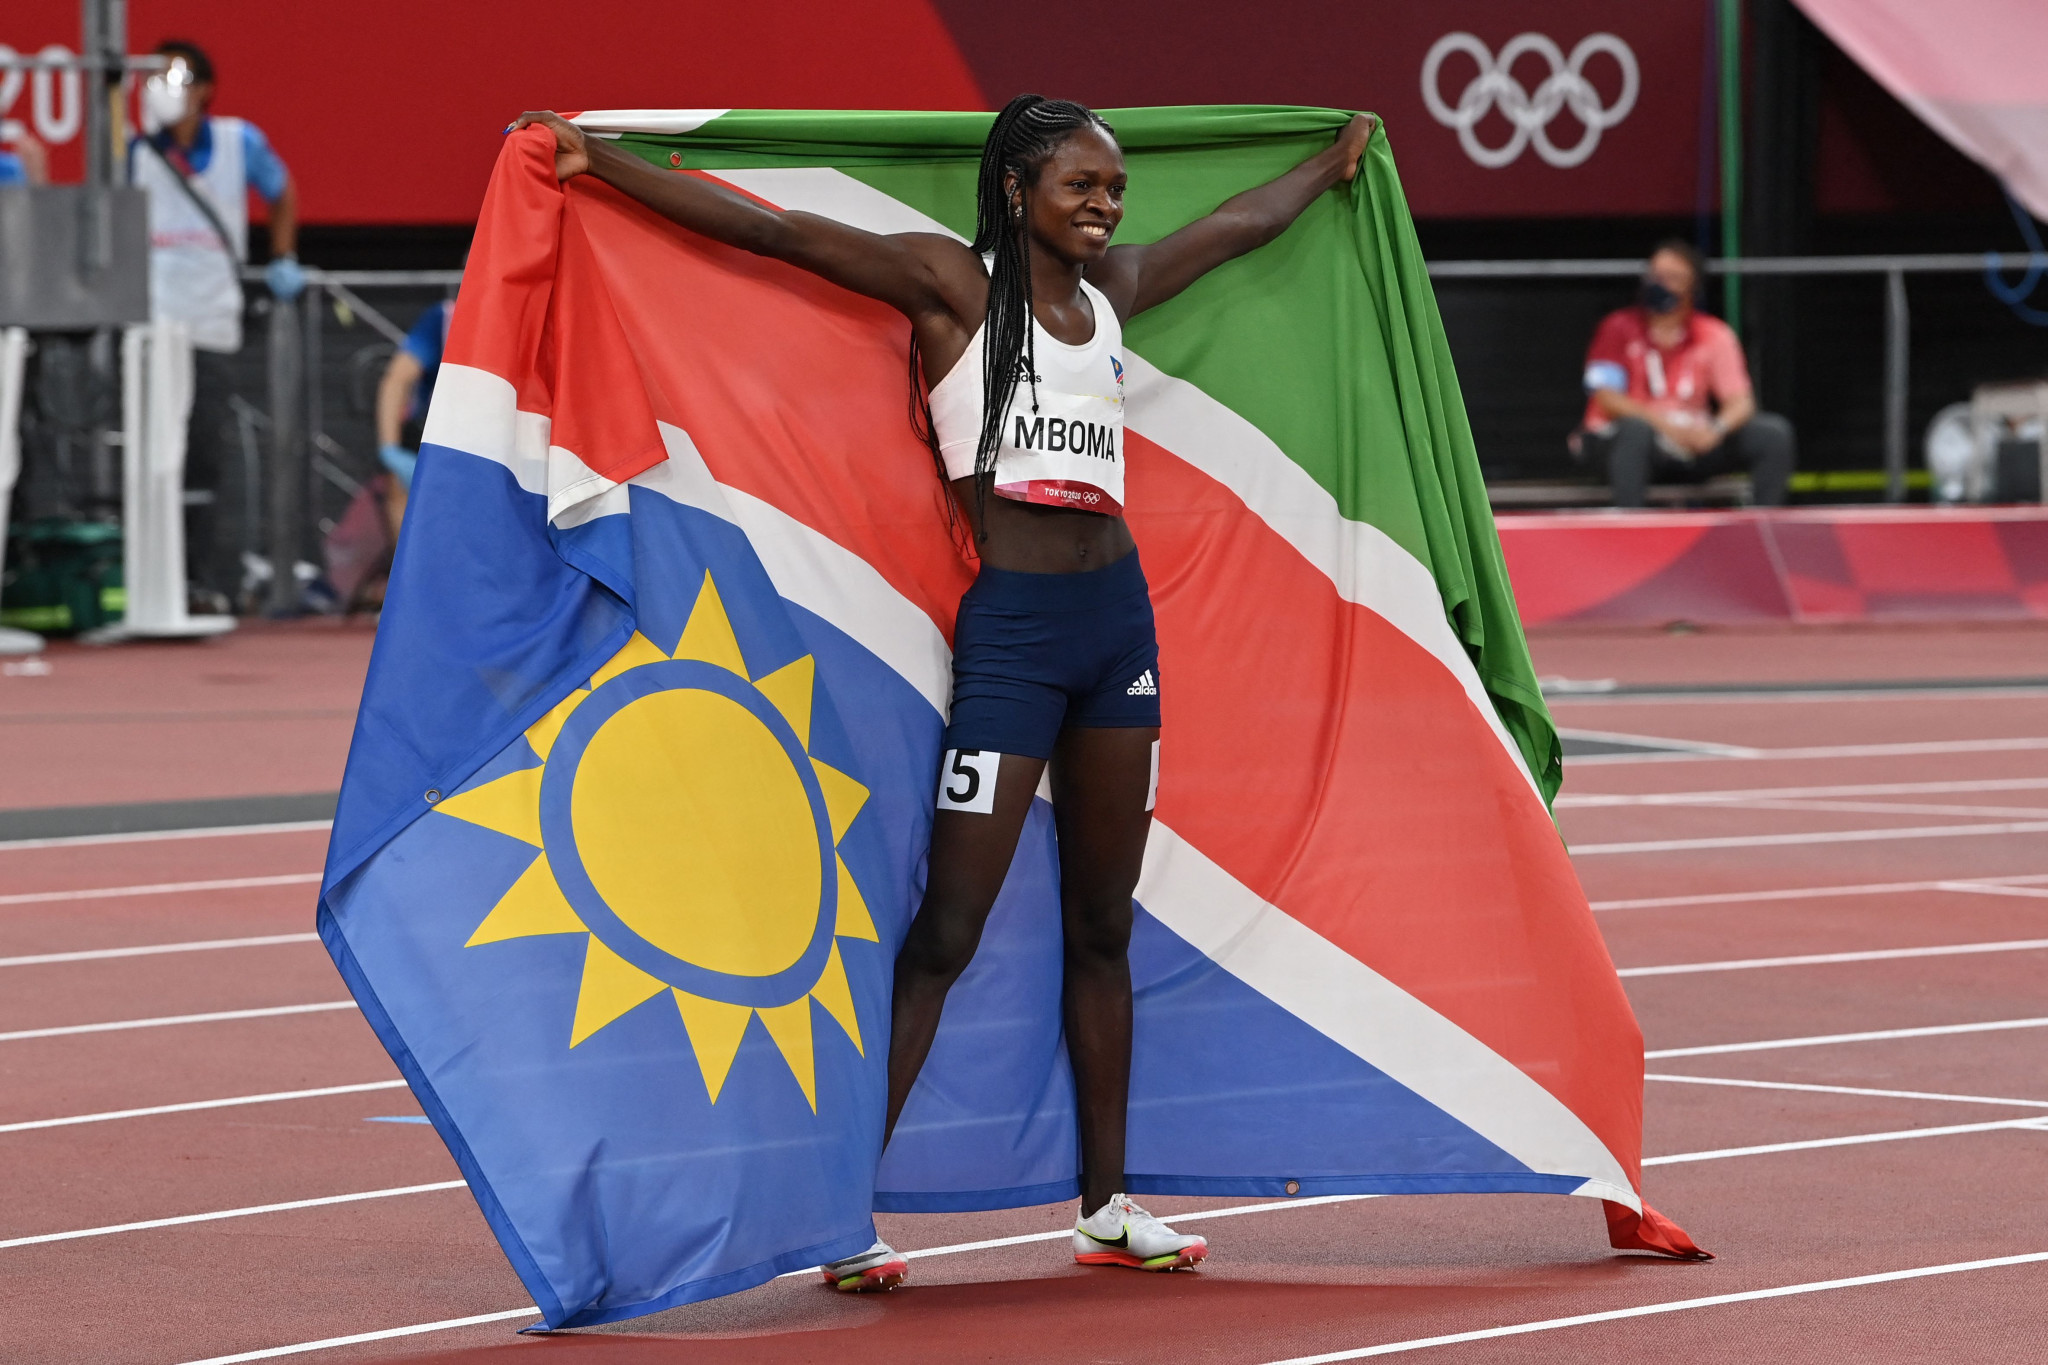 Namibian NOC President calls for more private-sector support following first Olympic medal in 25 years